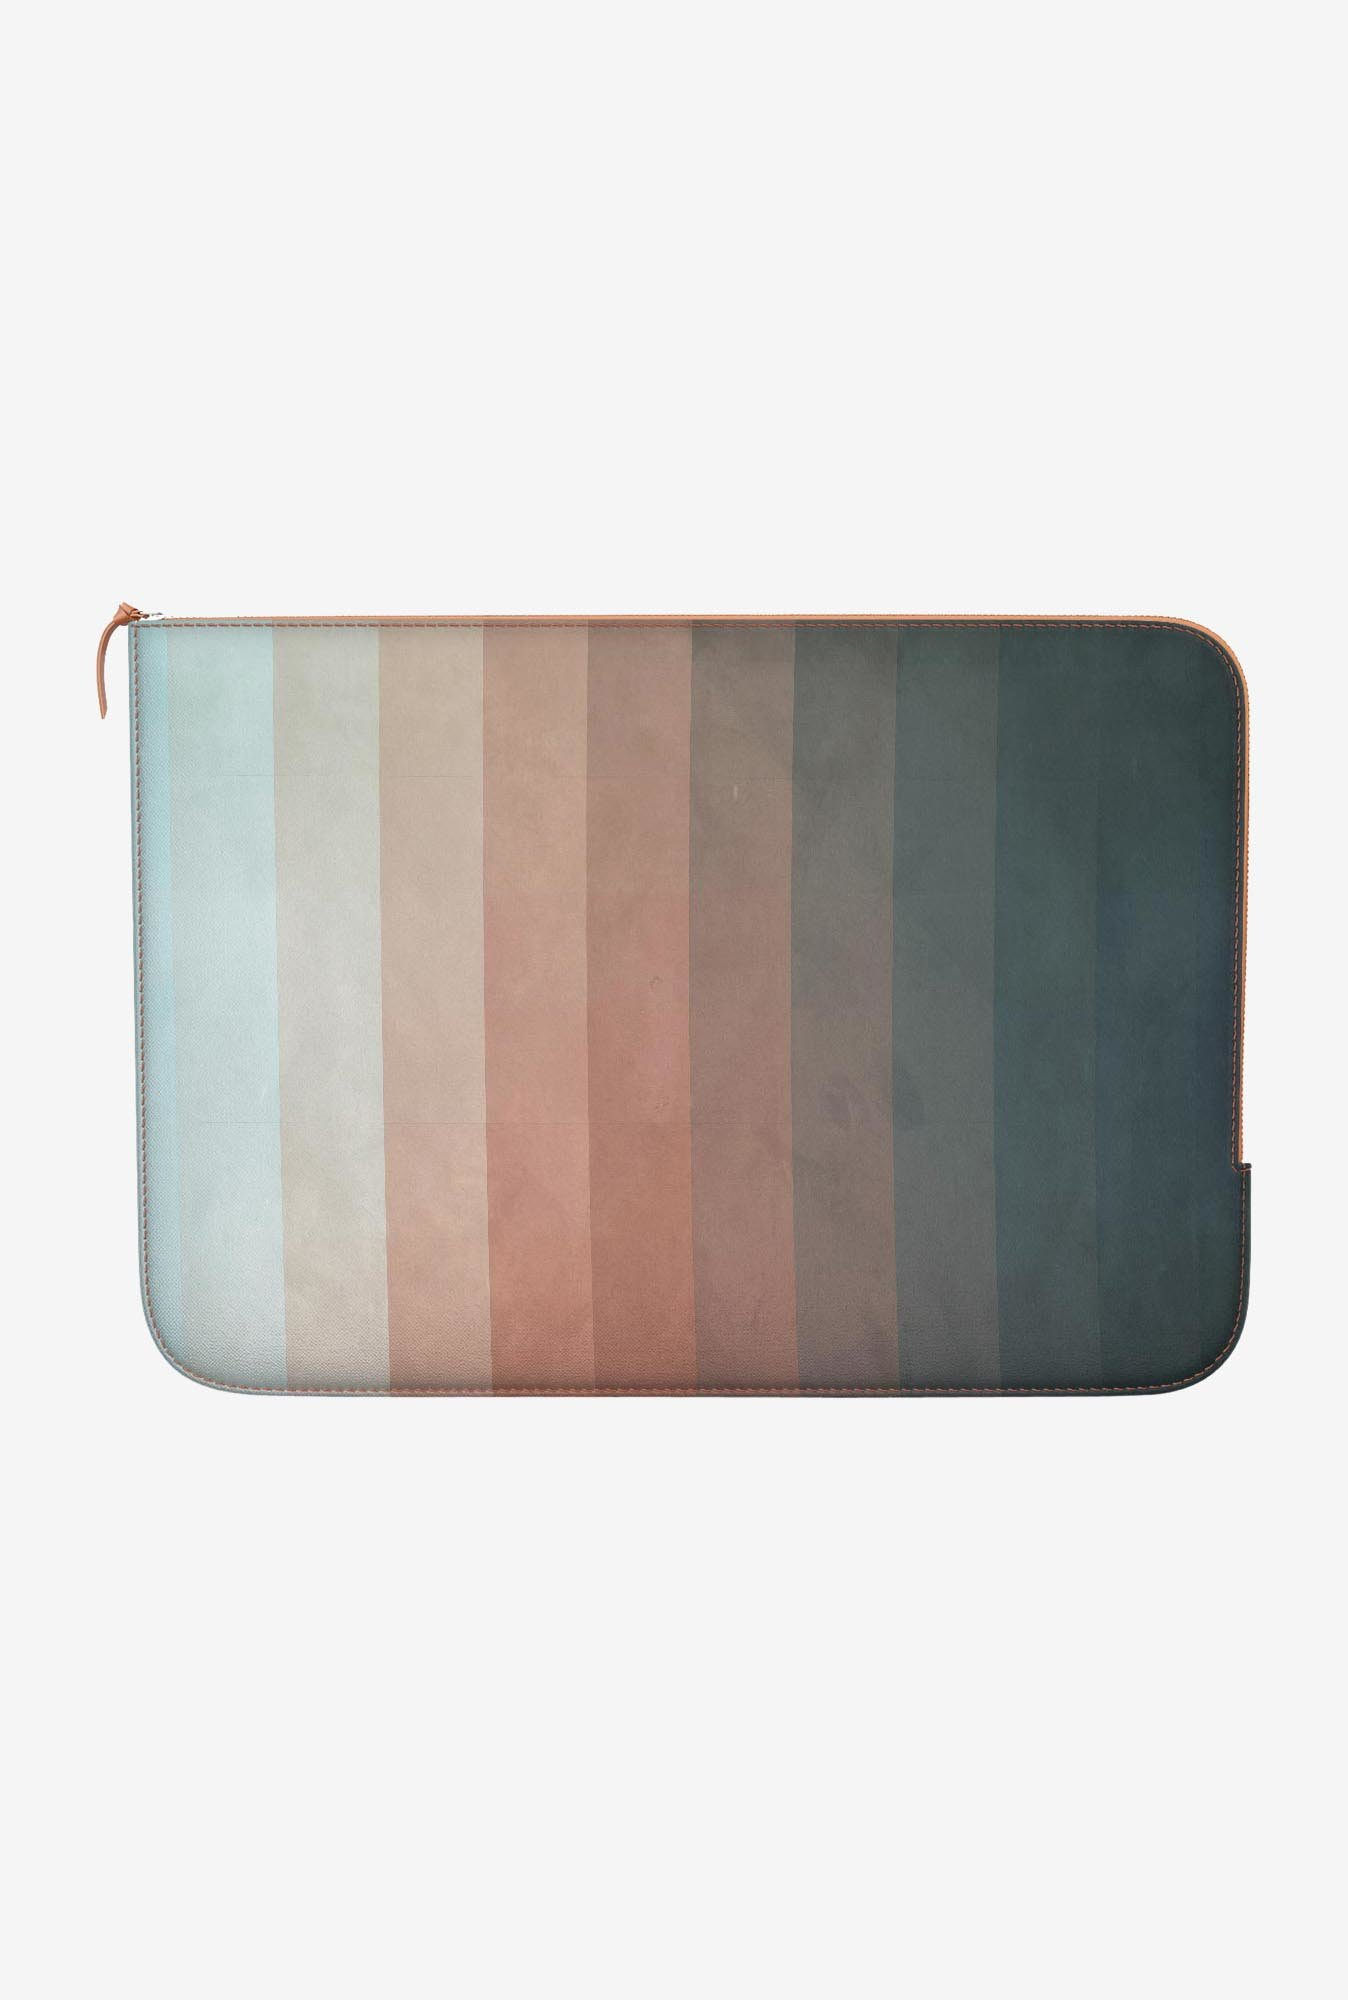 DailyObjects vylwwlyss MacBook Air 11 Zippered Sleeve